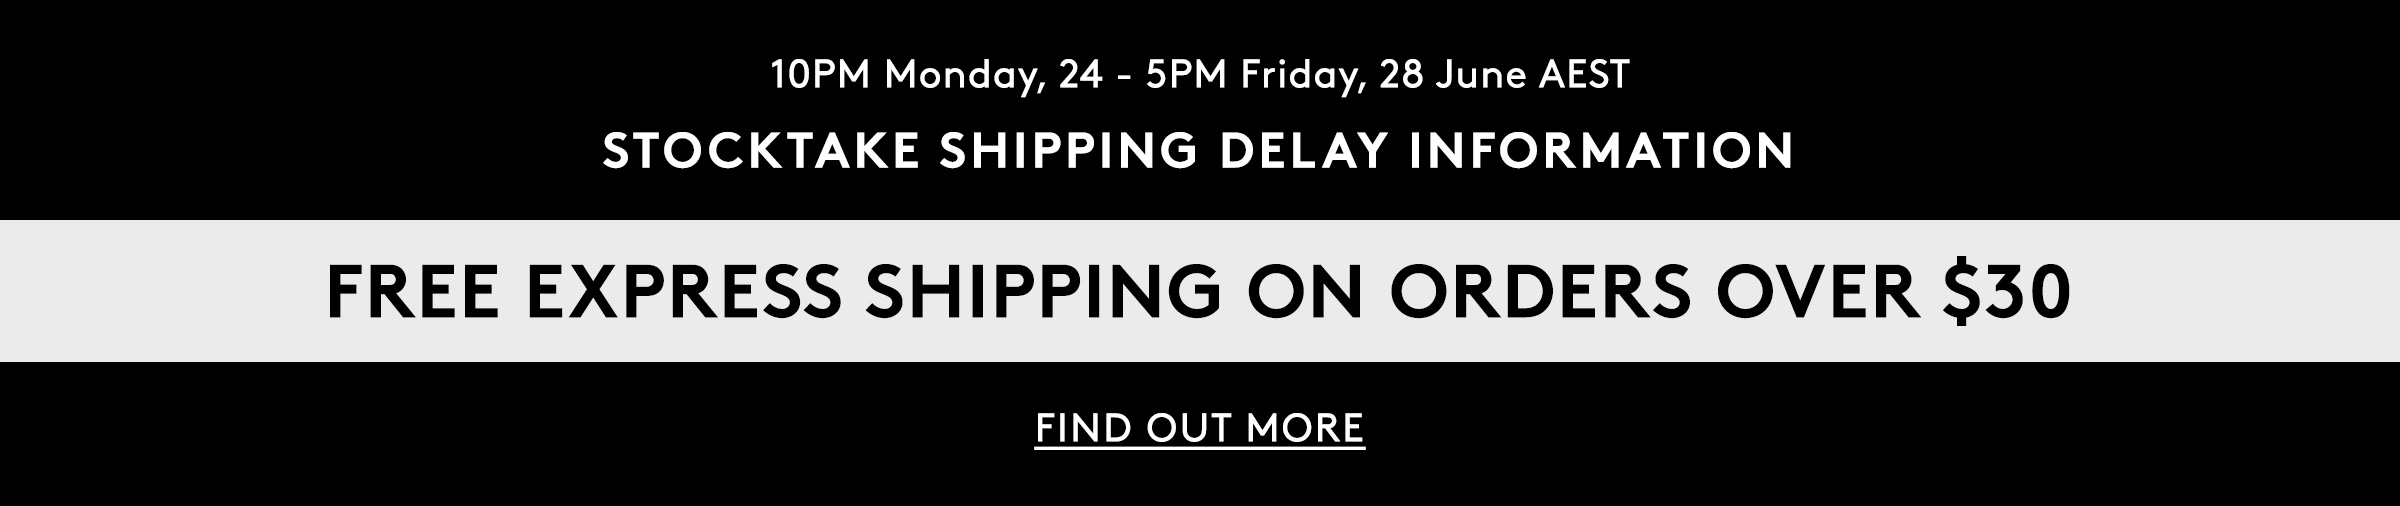 Stocktake Shipping Delay Information